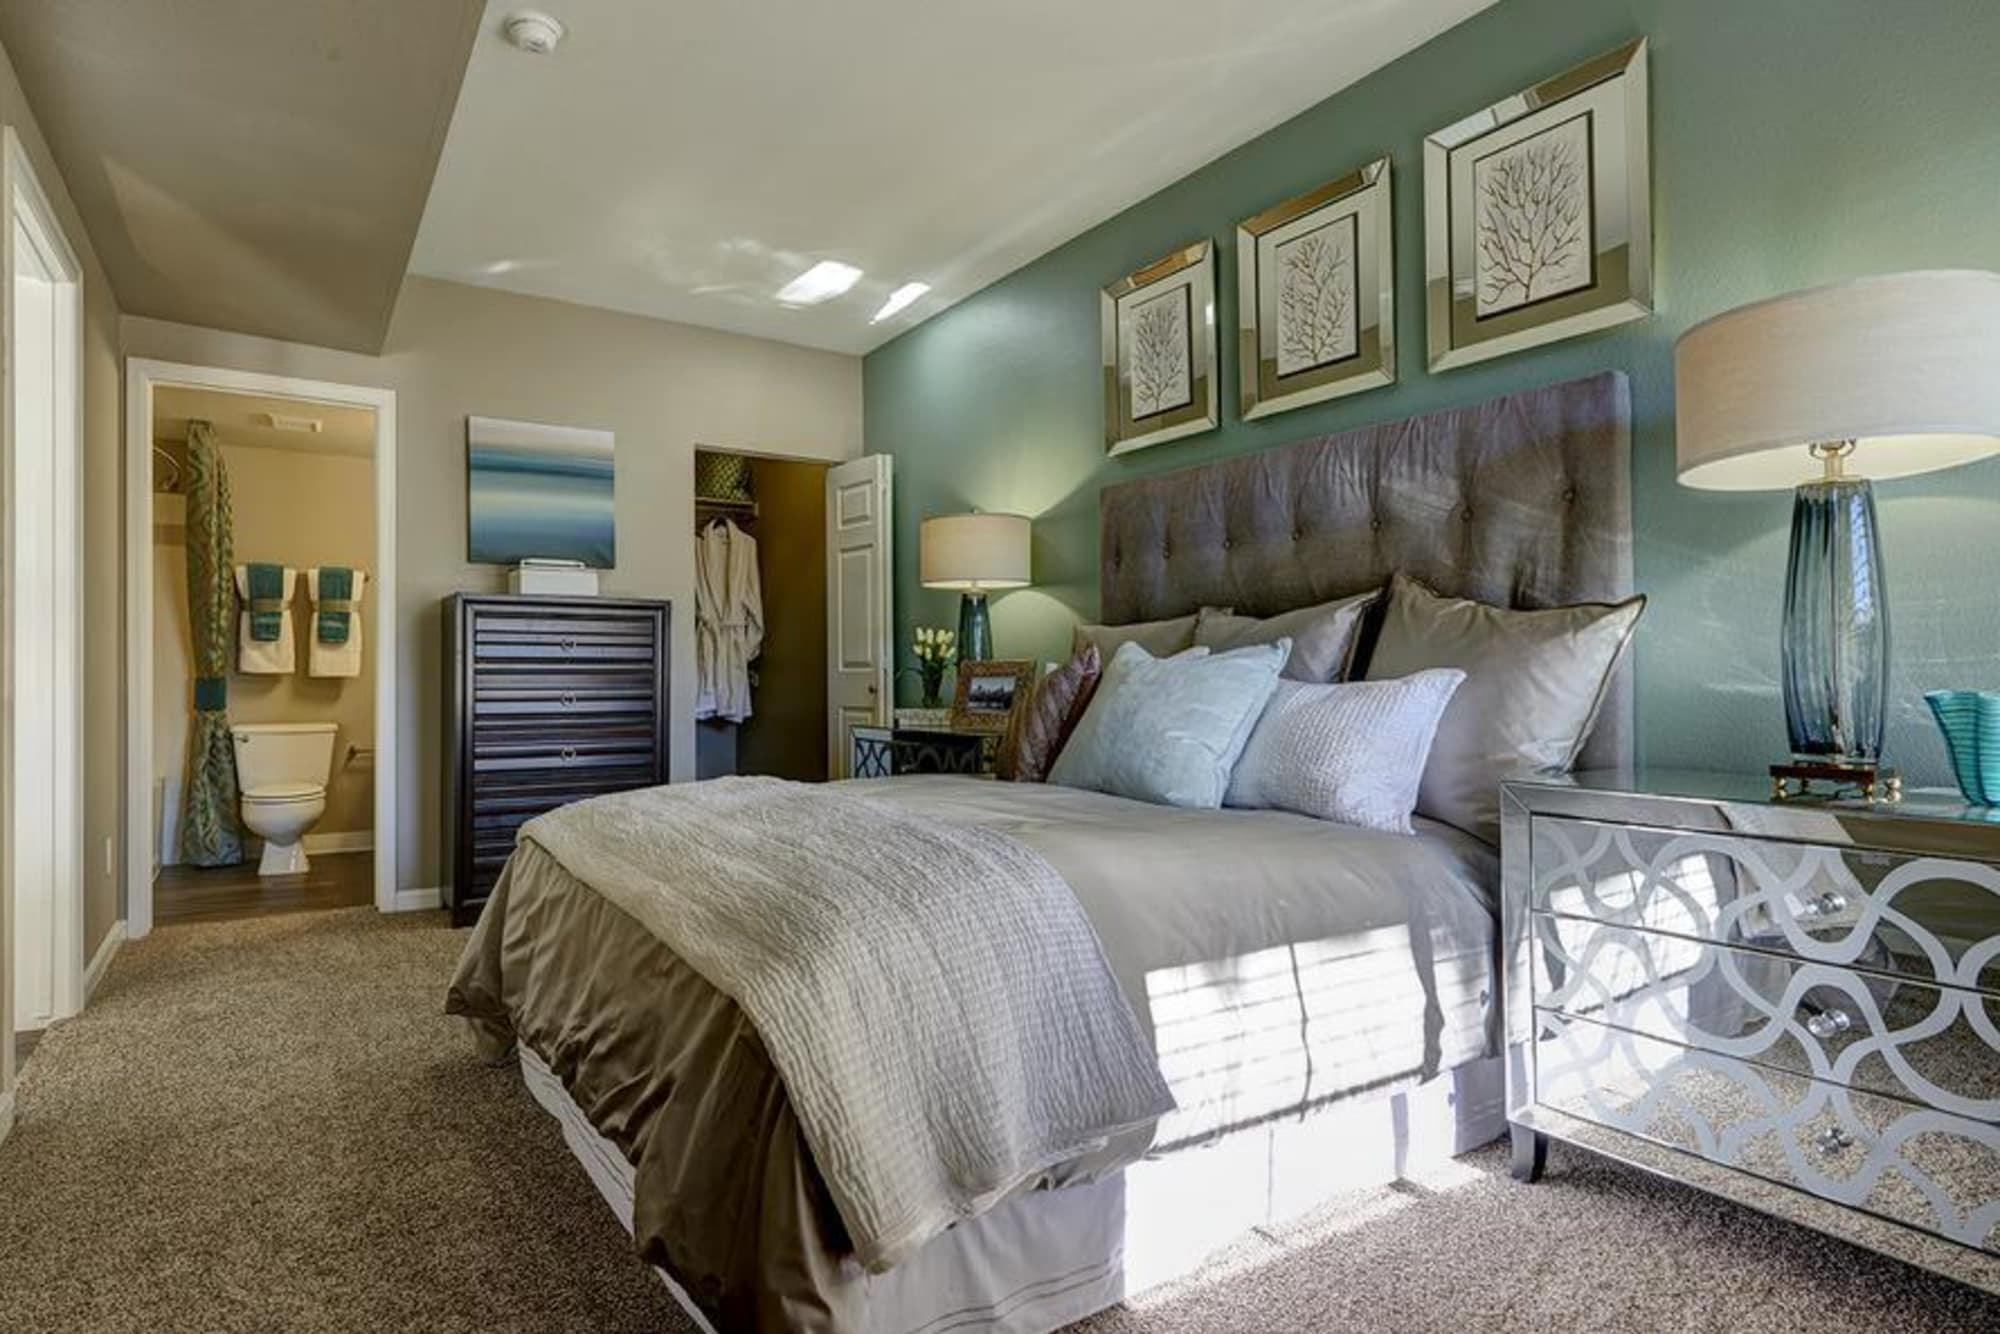 Comfy bedroom at Villas at Homestead Apartments